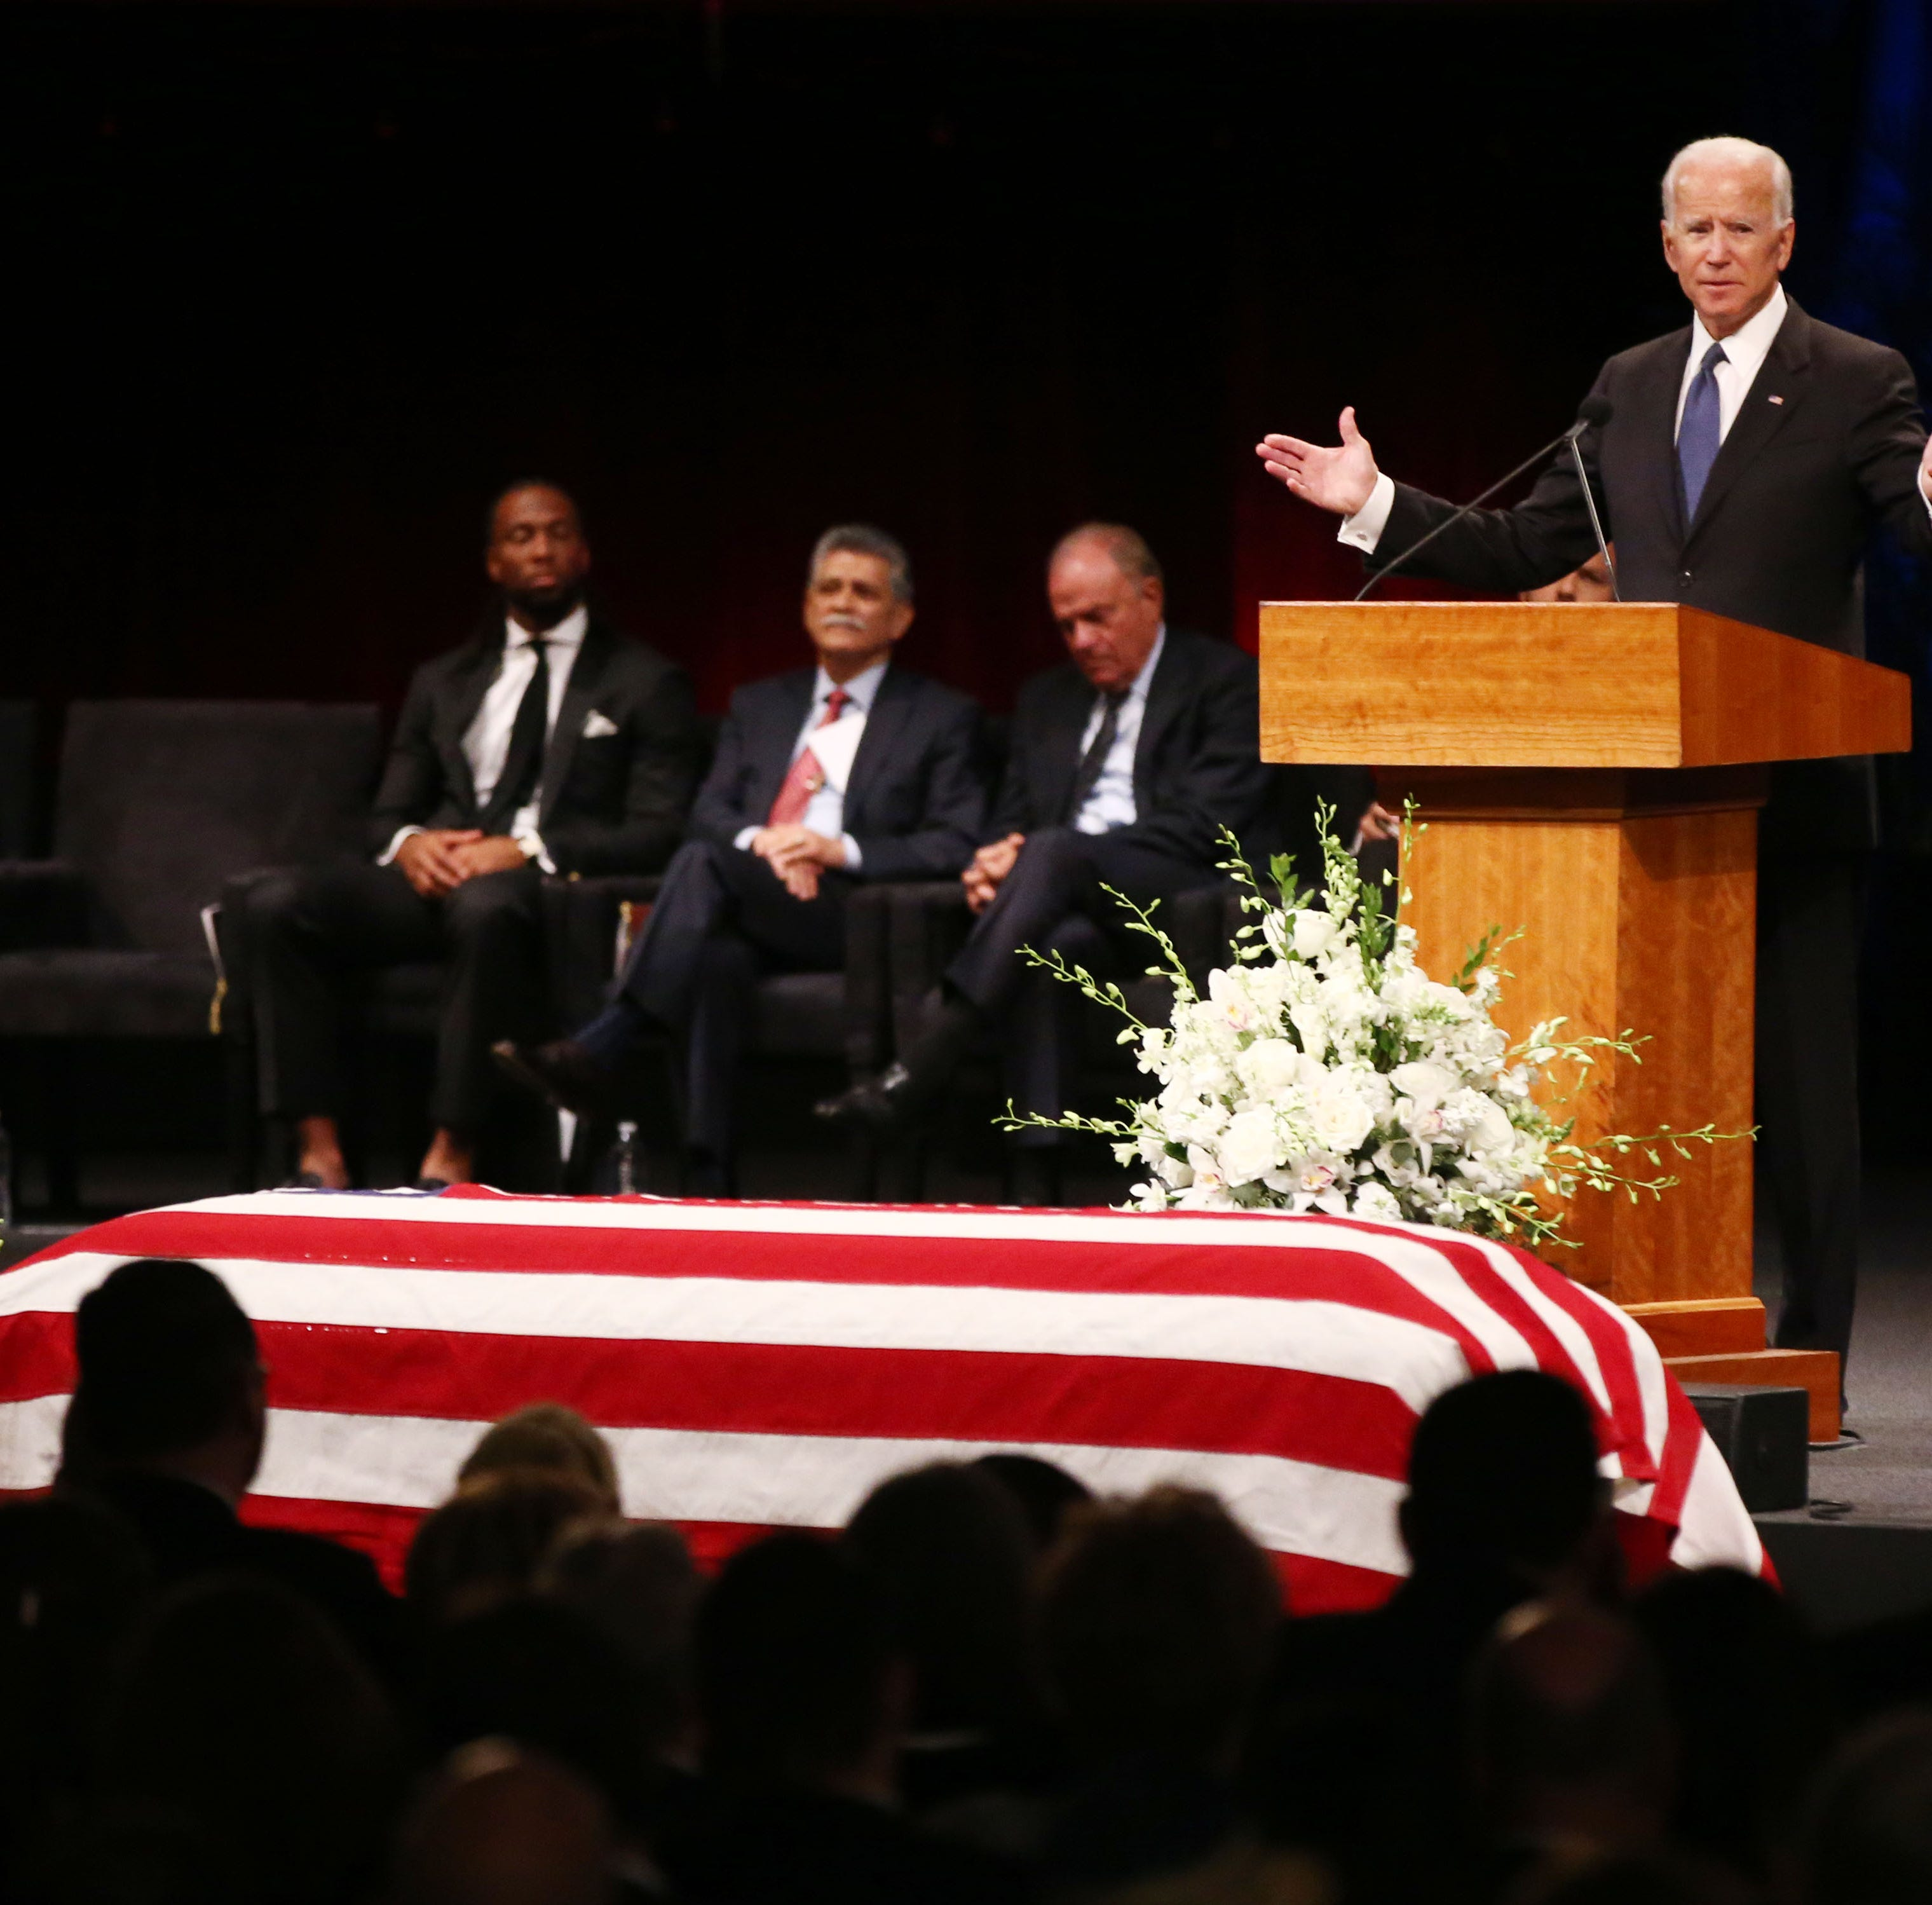 McCain's last lesson in love of country: Eulogies from Bush and Obama, who dashed his dreams